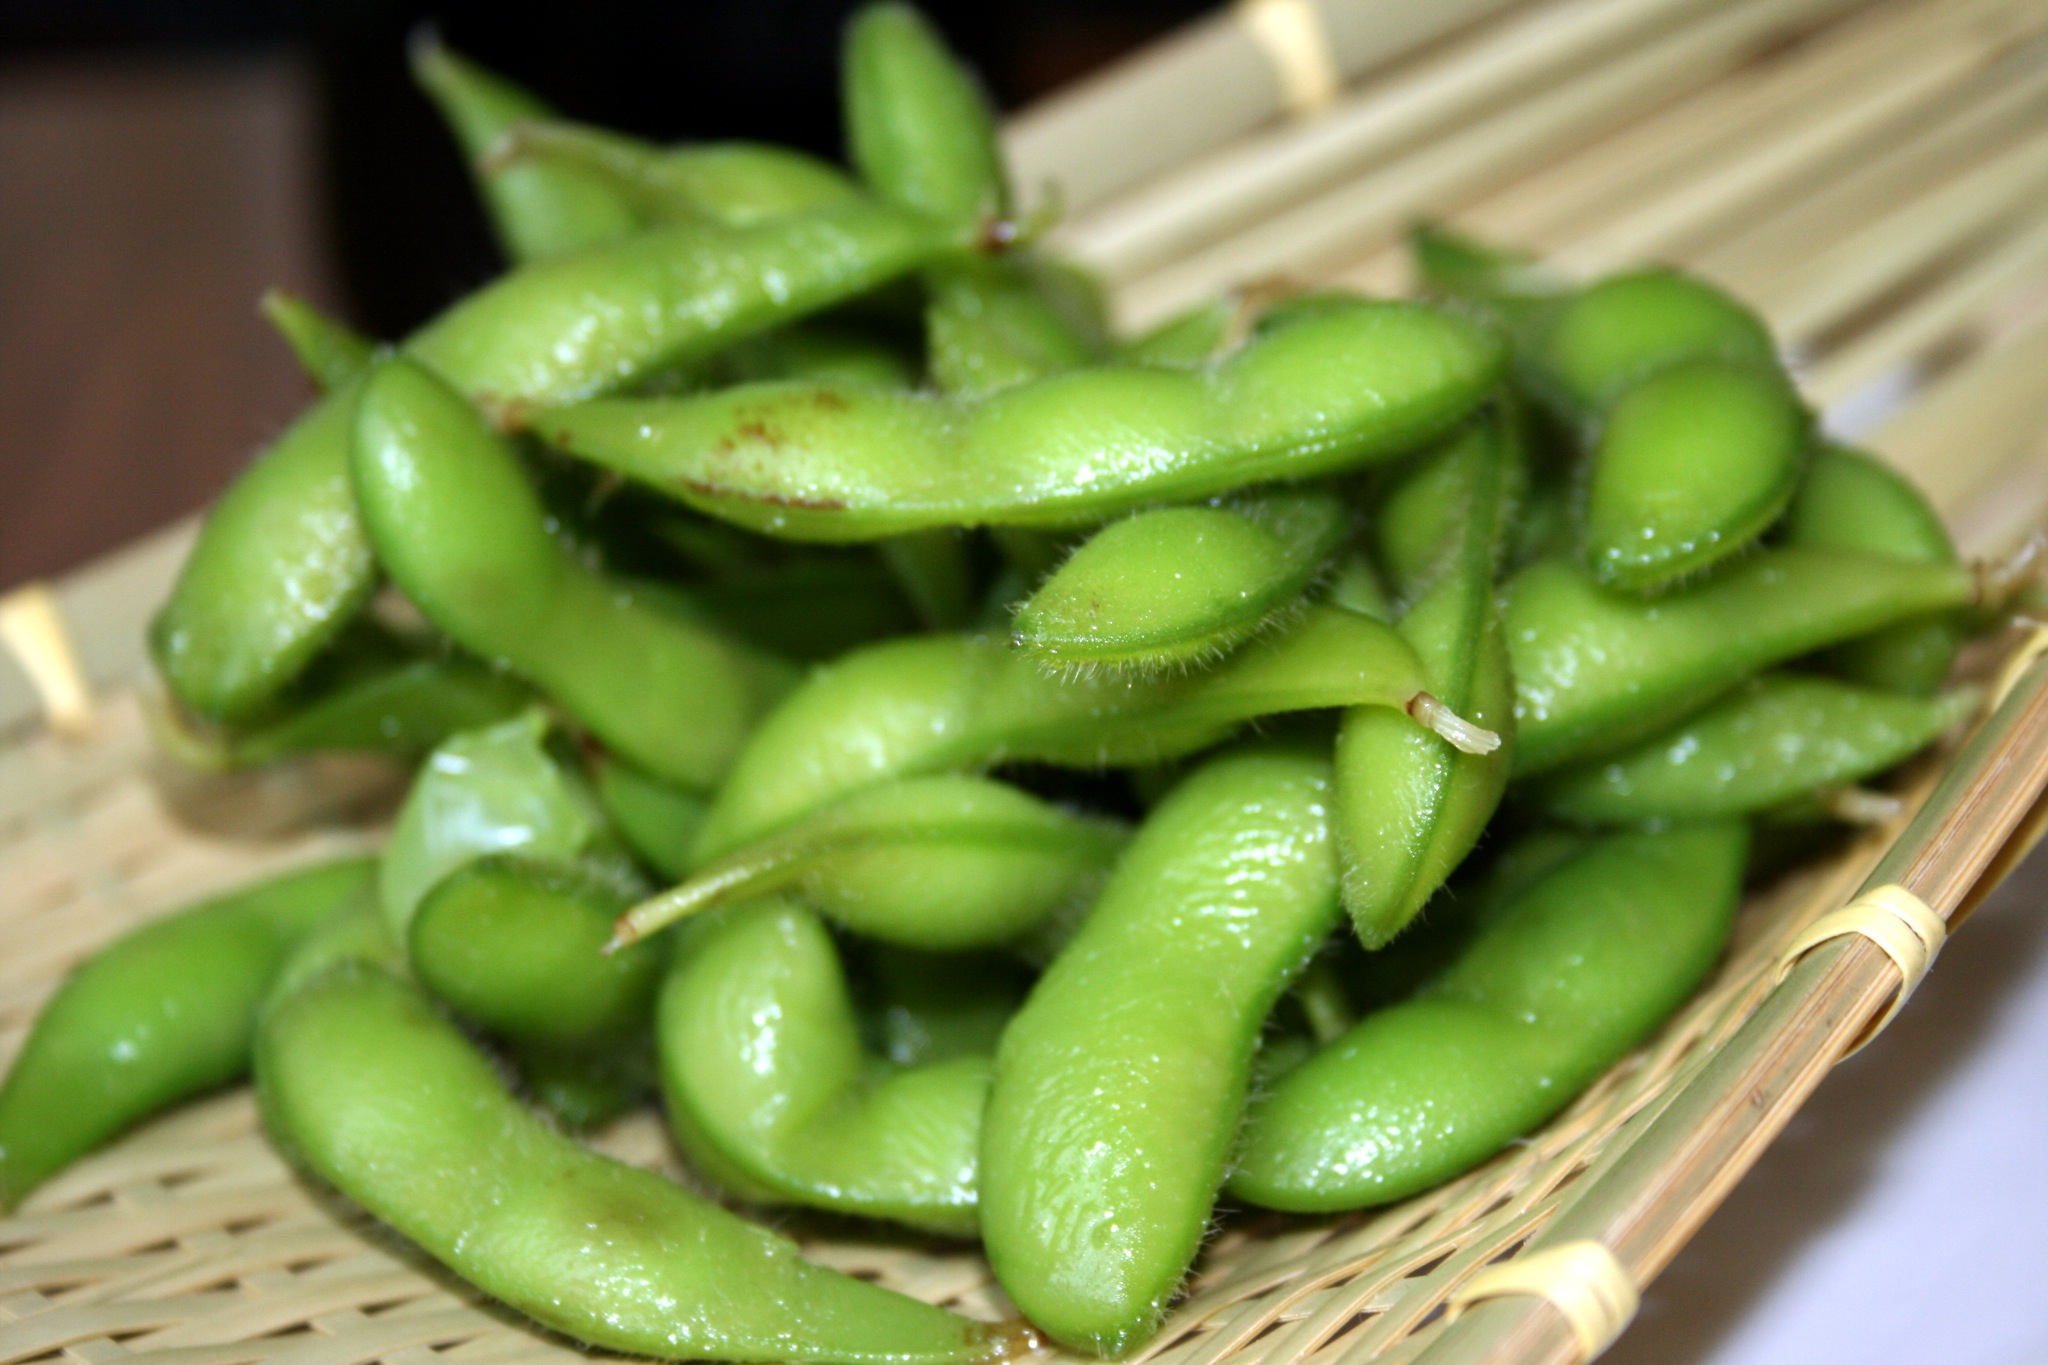 """Edamame"" photograph by Zesmerelda at https://www.flickr.com/photos/48889116659@N01/1231786582 (CC BY-SA 2.0 license)"